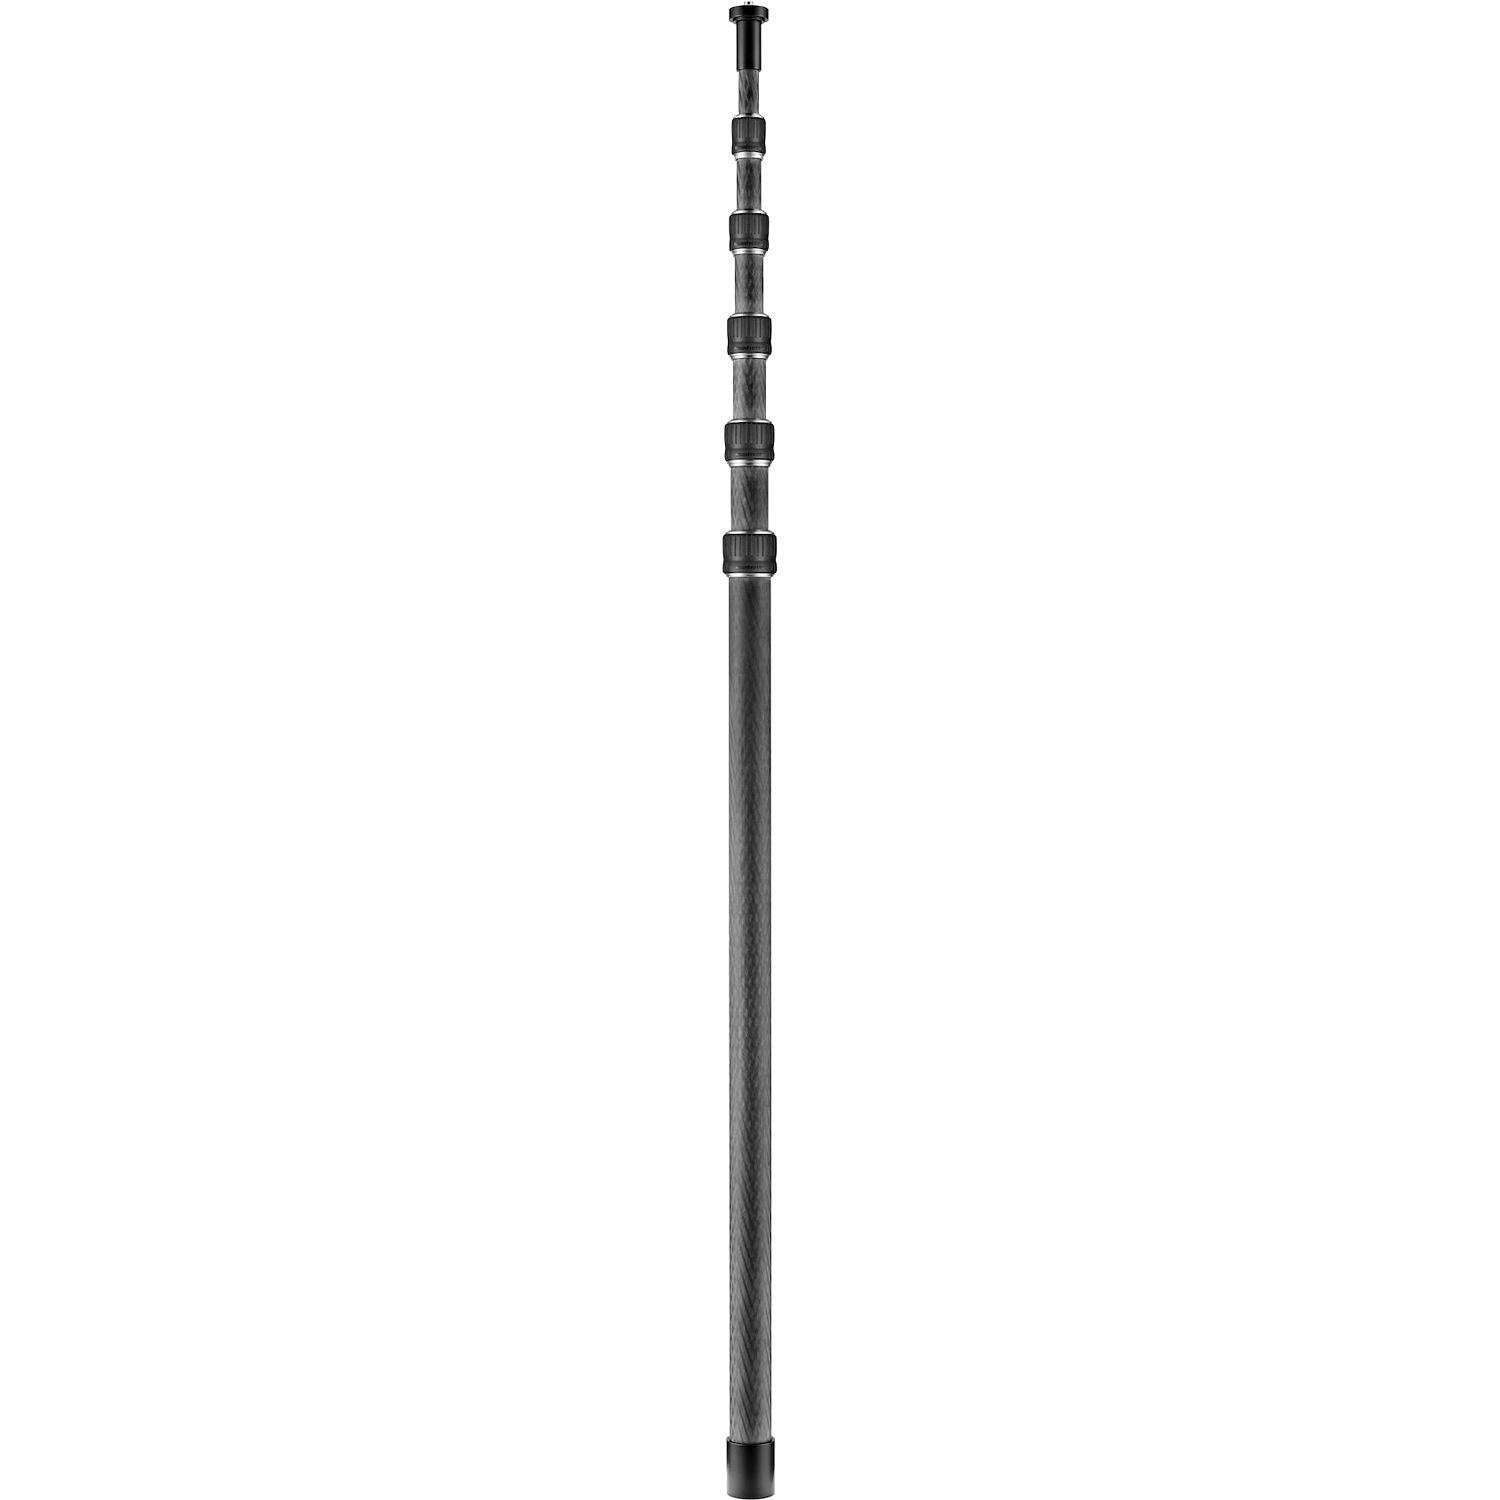 Manfrotto Carbon Fiber Boom Pole for VR Camera (Large)